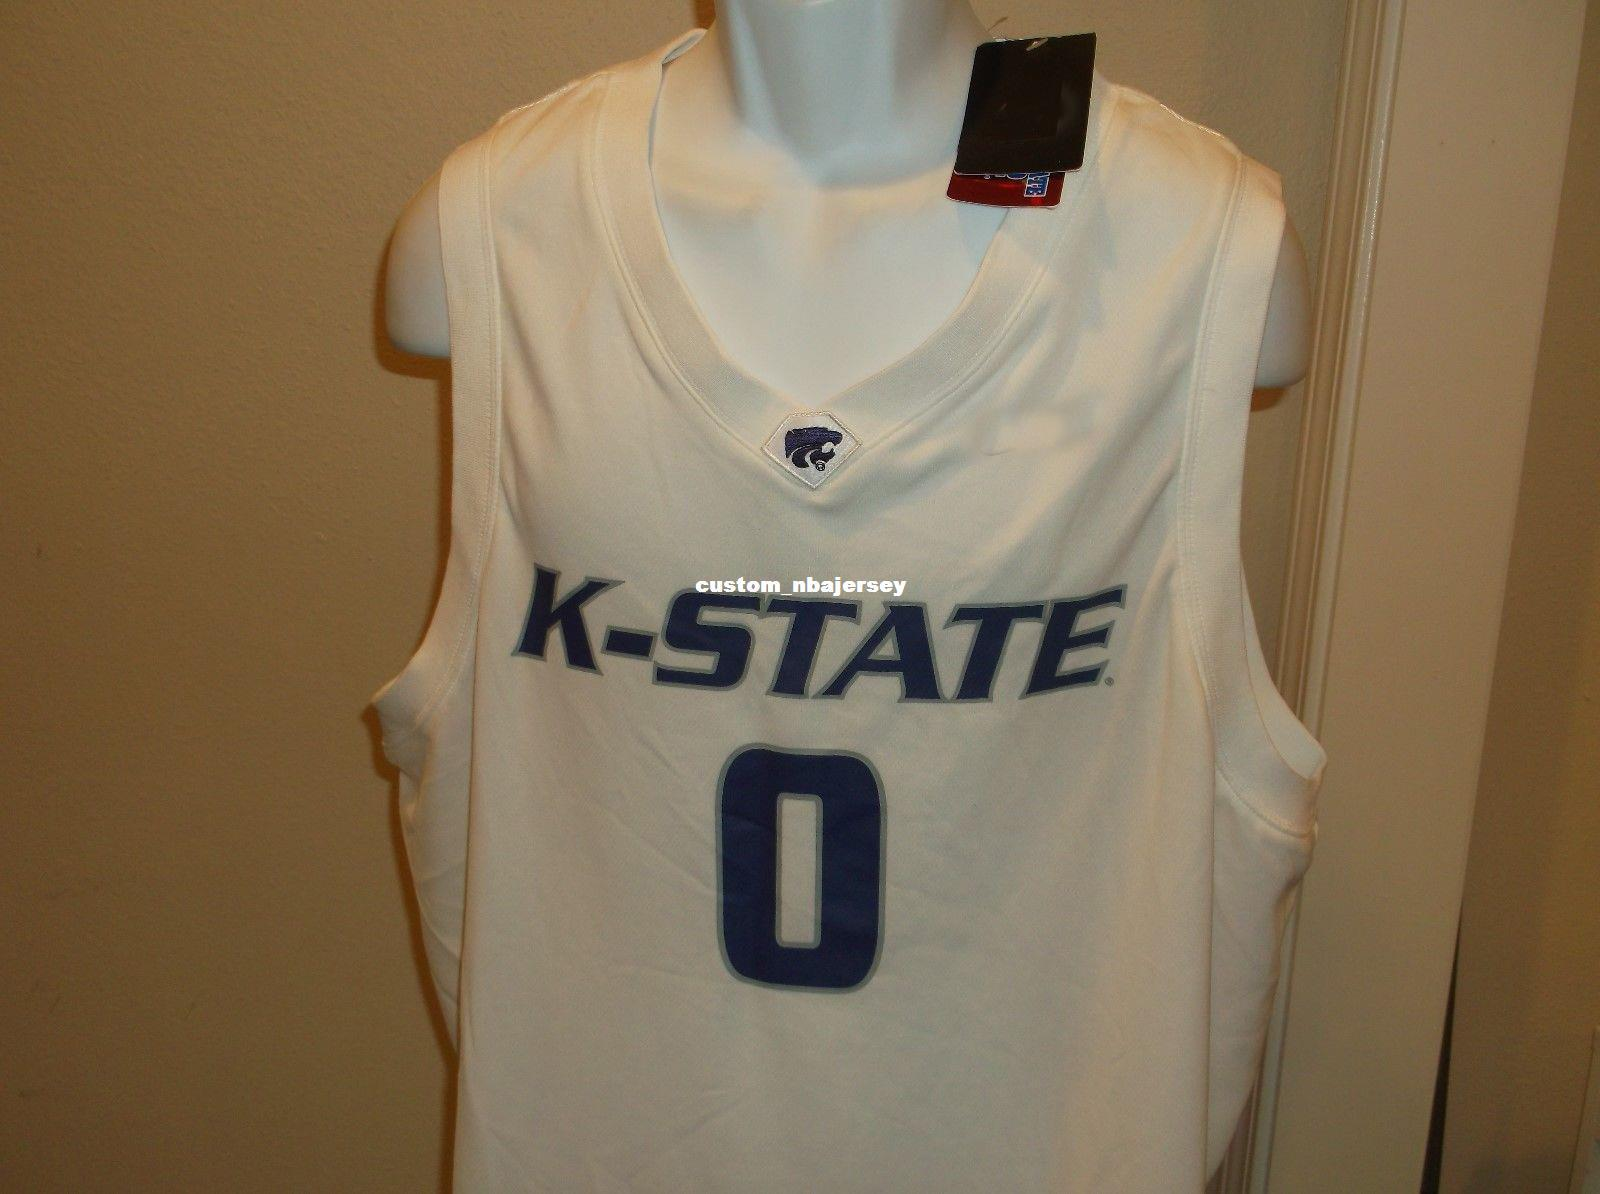 bfc22f409cf 2019 Cheap Custom Kansas State Wildcats Basketball Jersey Stitched  Customize Any Number Name MEN WOMEN YOUTH XS 5XL From Custom_nbajersey,  $17.52 | DHgate.